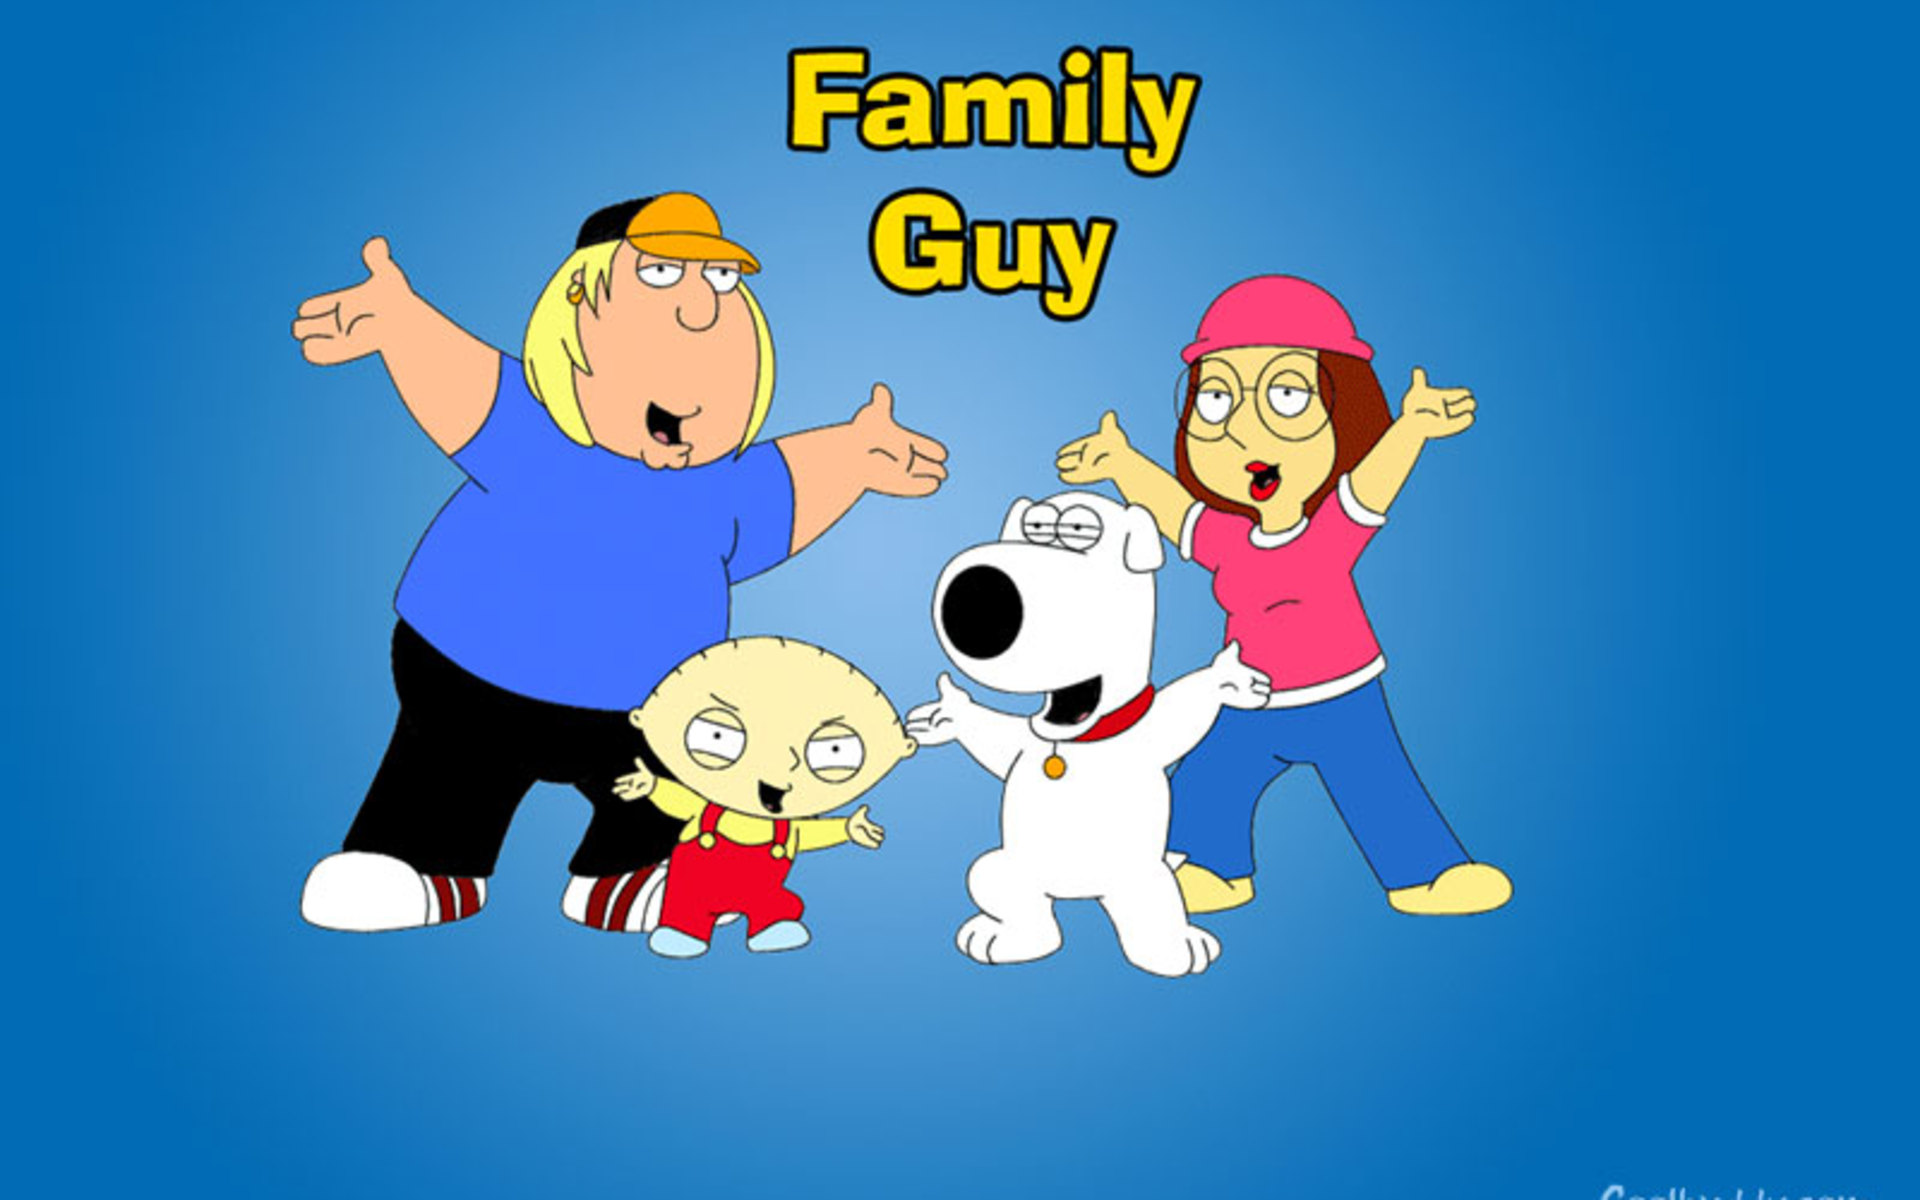 wallpaper Family Guy Wallpapers hd wallpaper background desktop 1920x1200